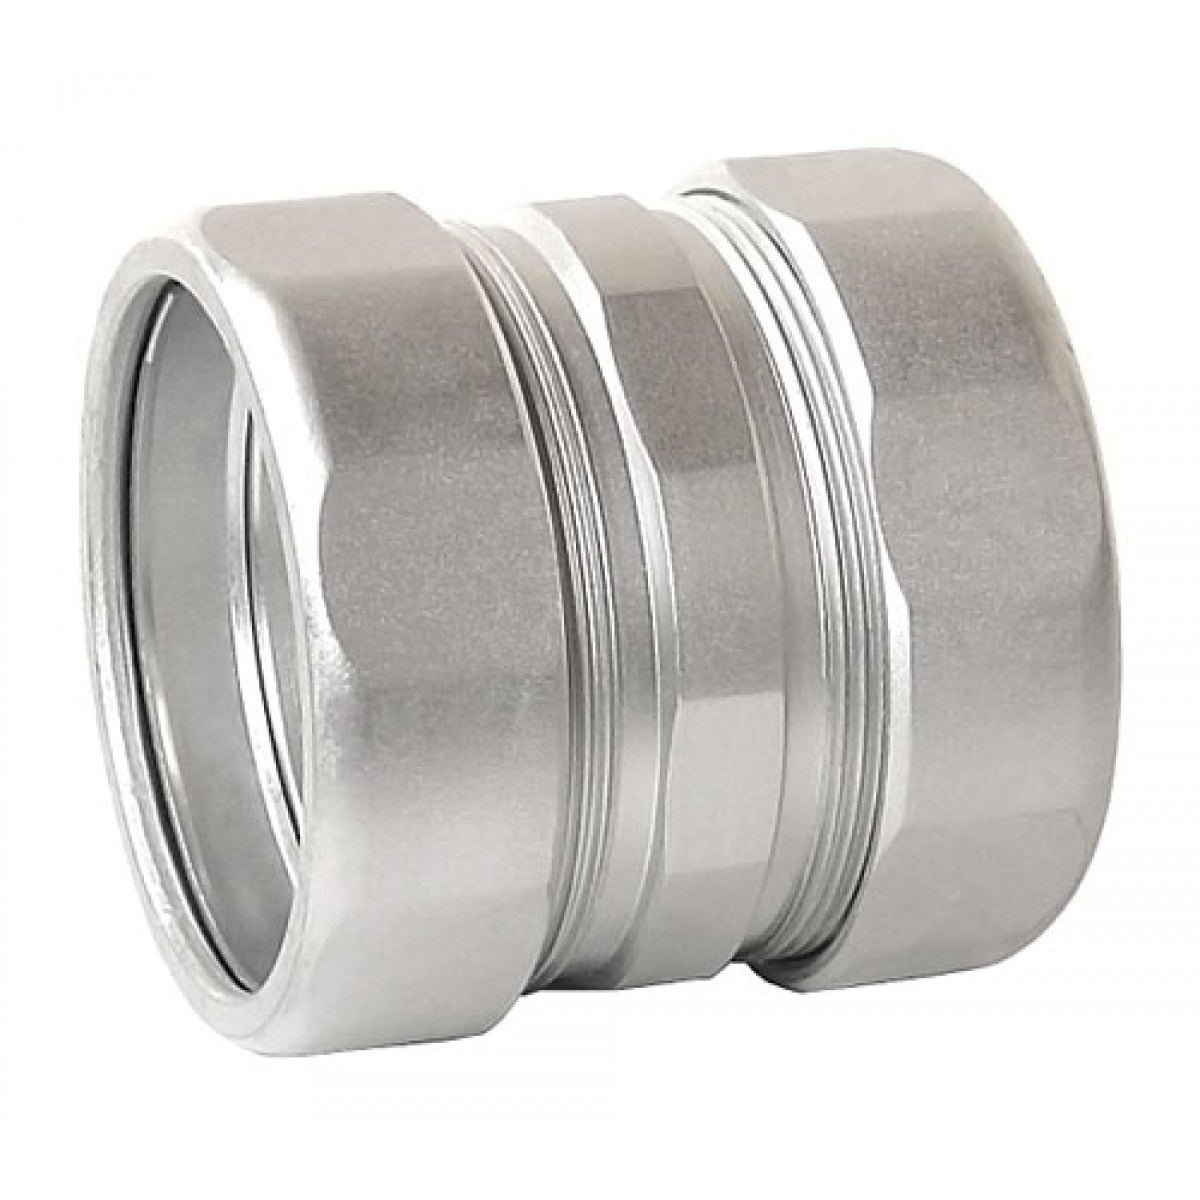 2 Pcs, 2 in. Zinc Plated Steel Compression Coupling, Zinc Plated Steel